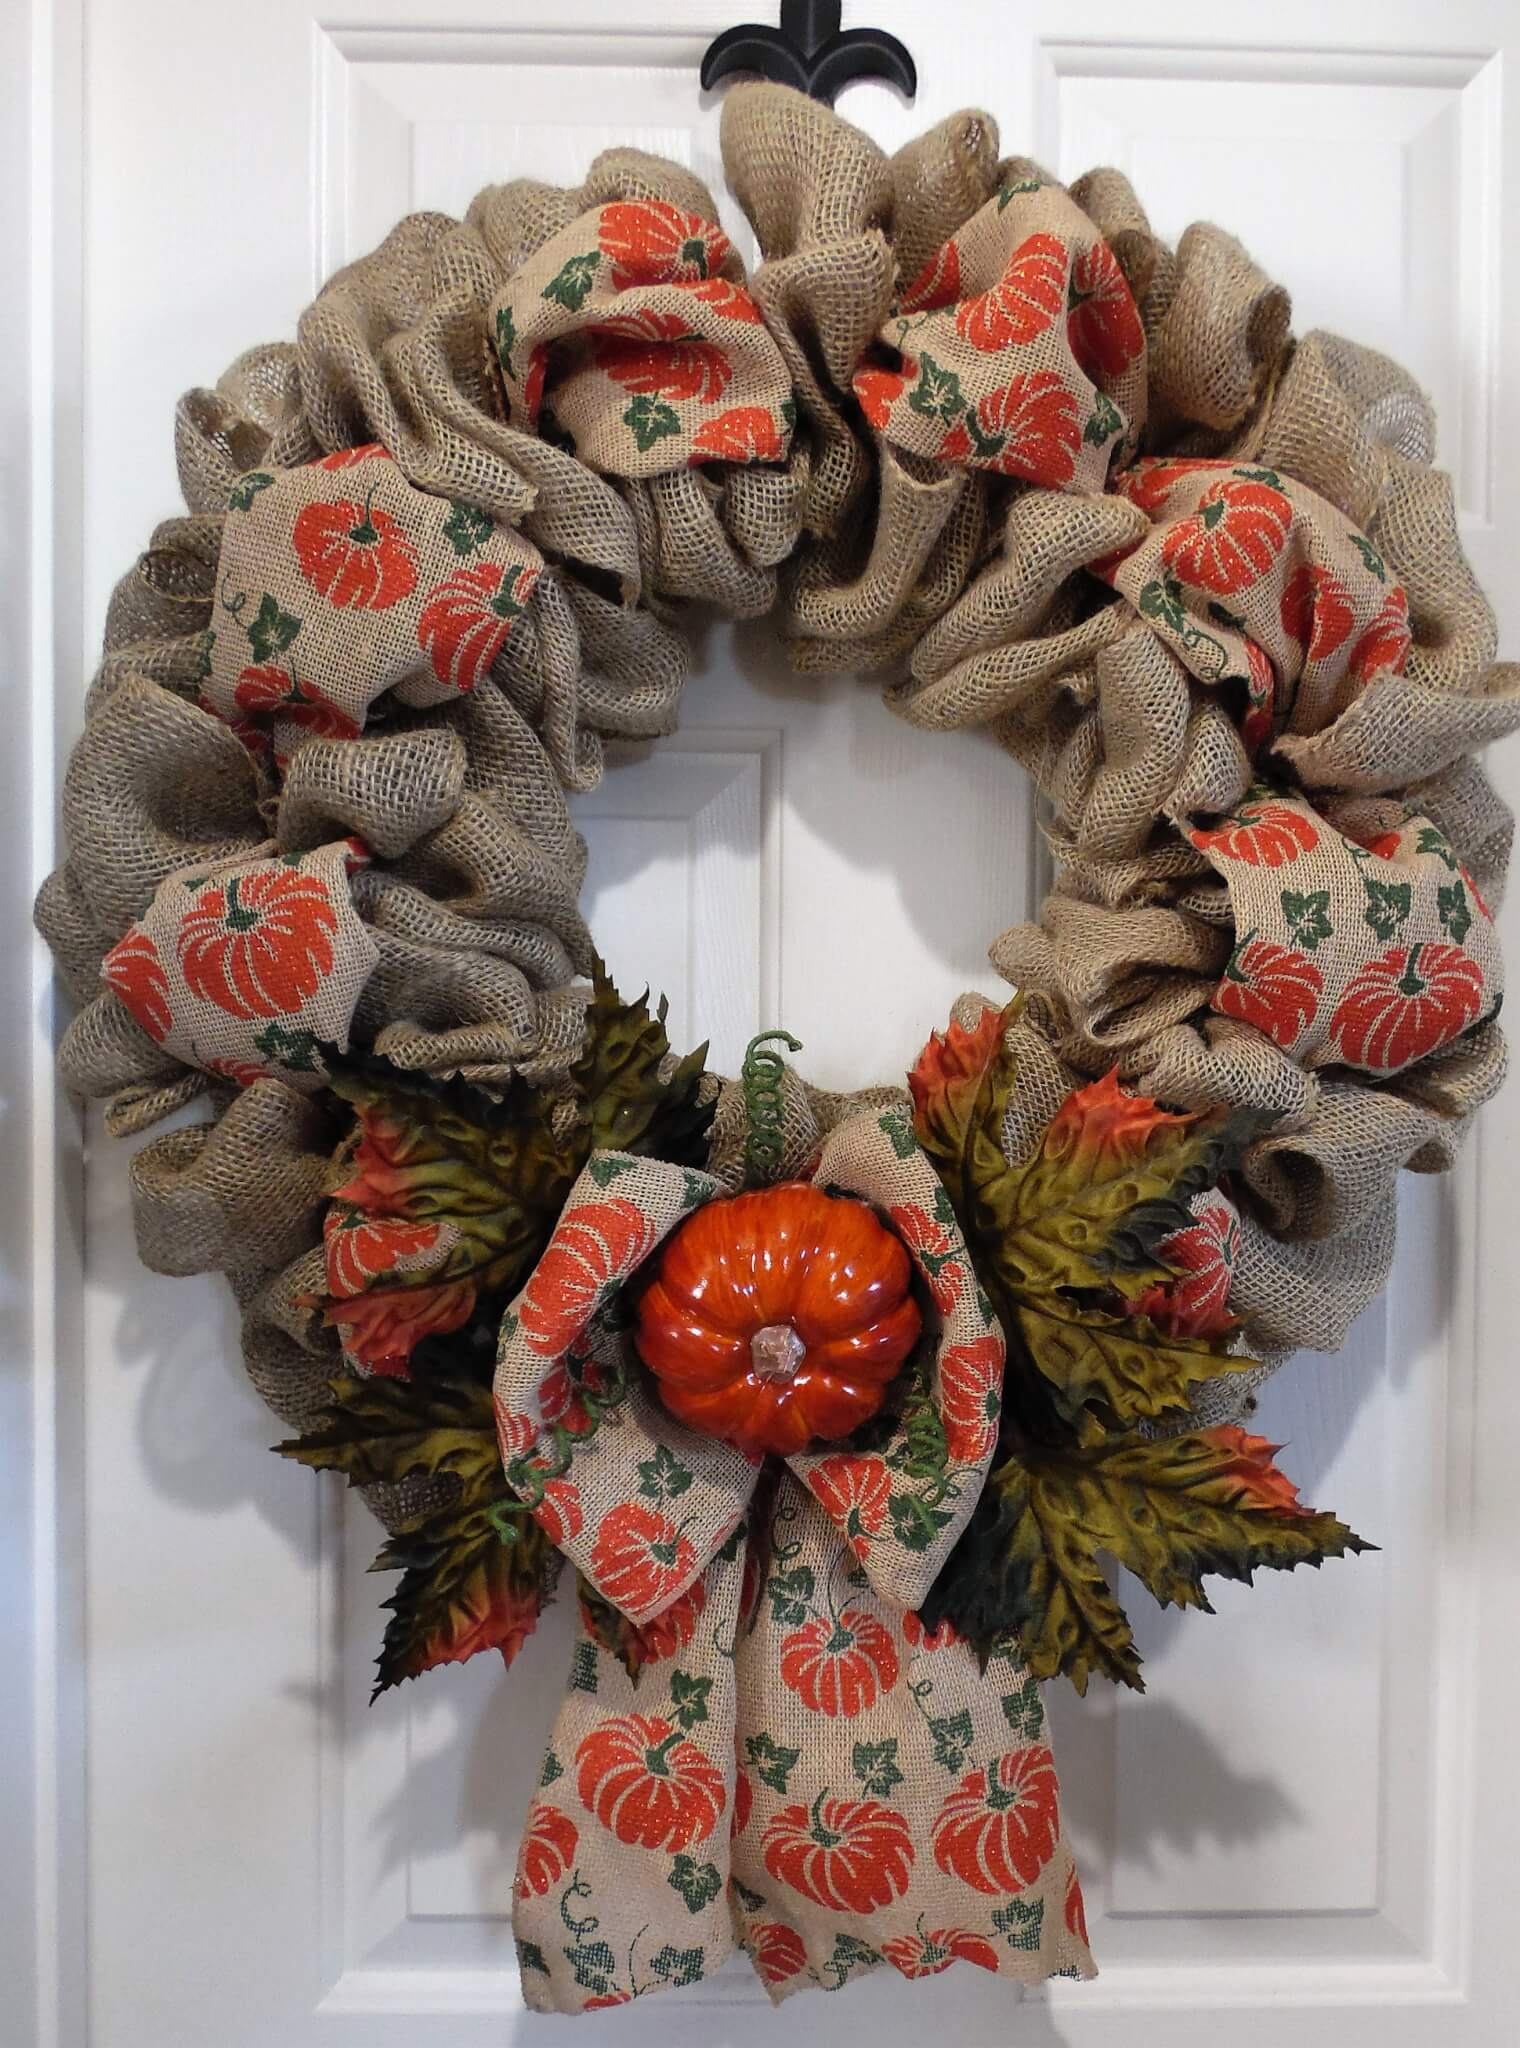 Fall Pumpkin Wreath  Home Decor Wreaths  Garland  Centerpieces  Door Swags  Company in Las